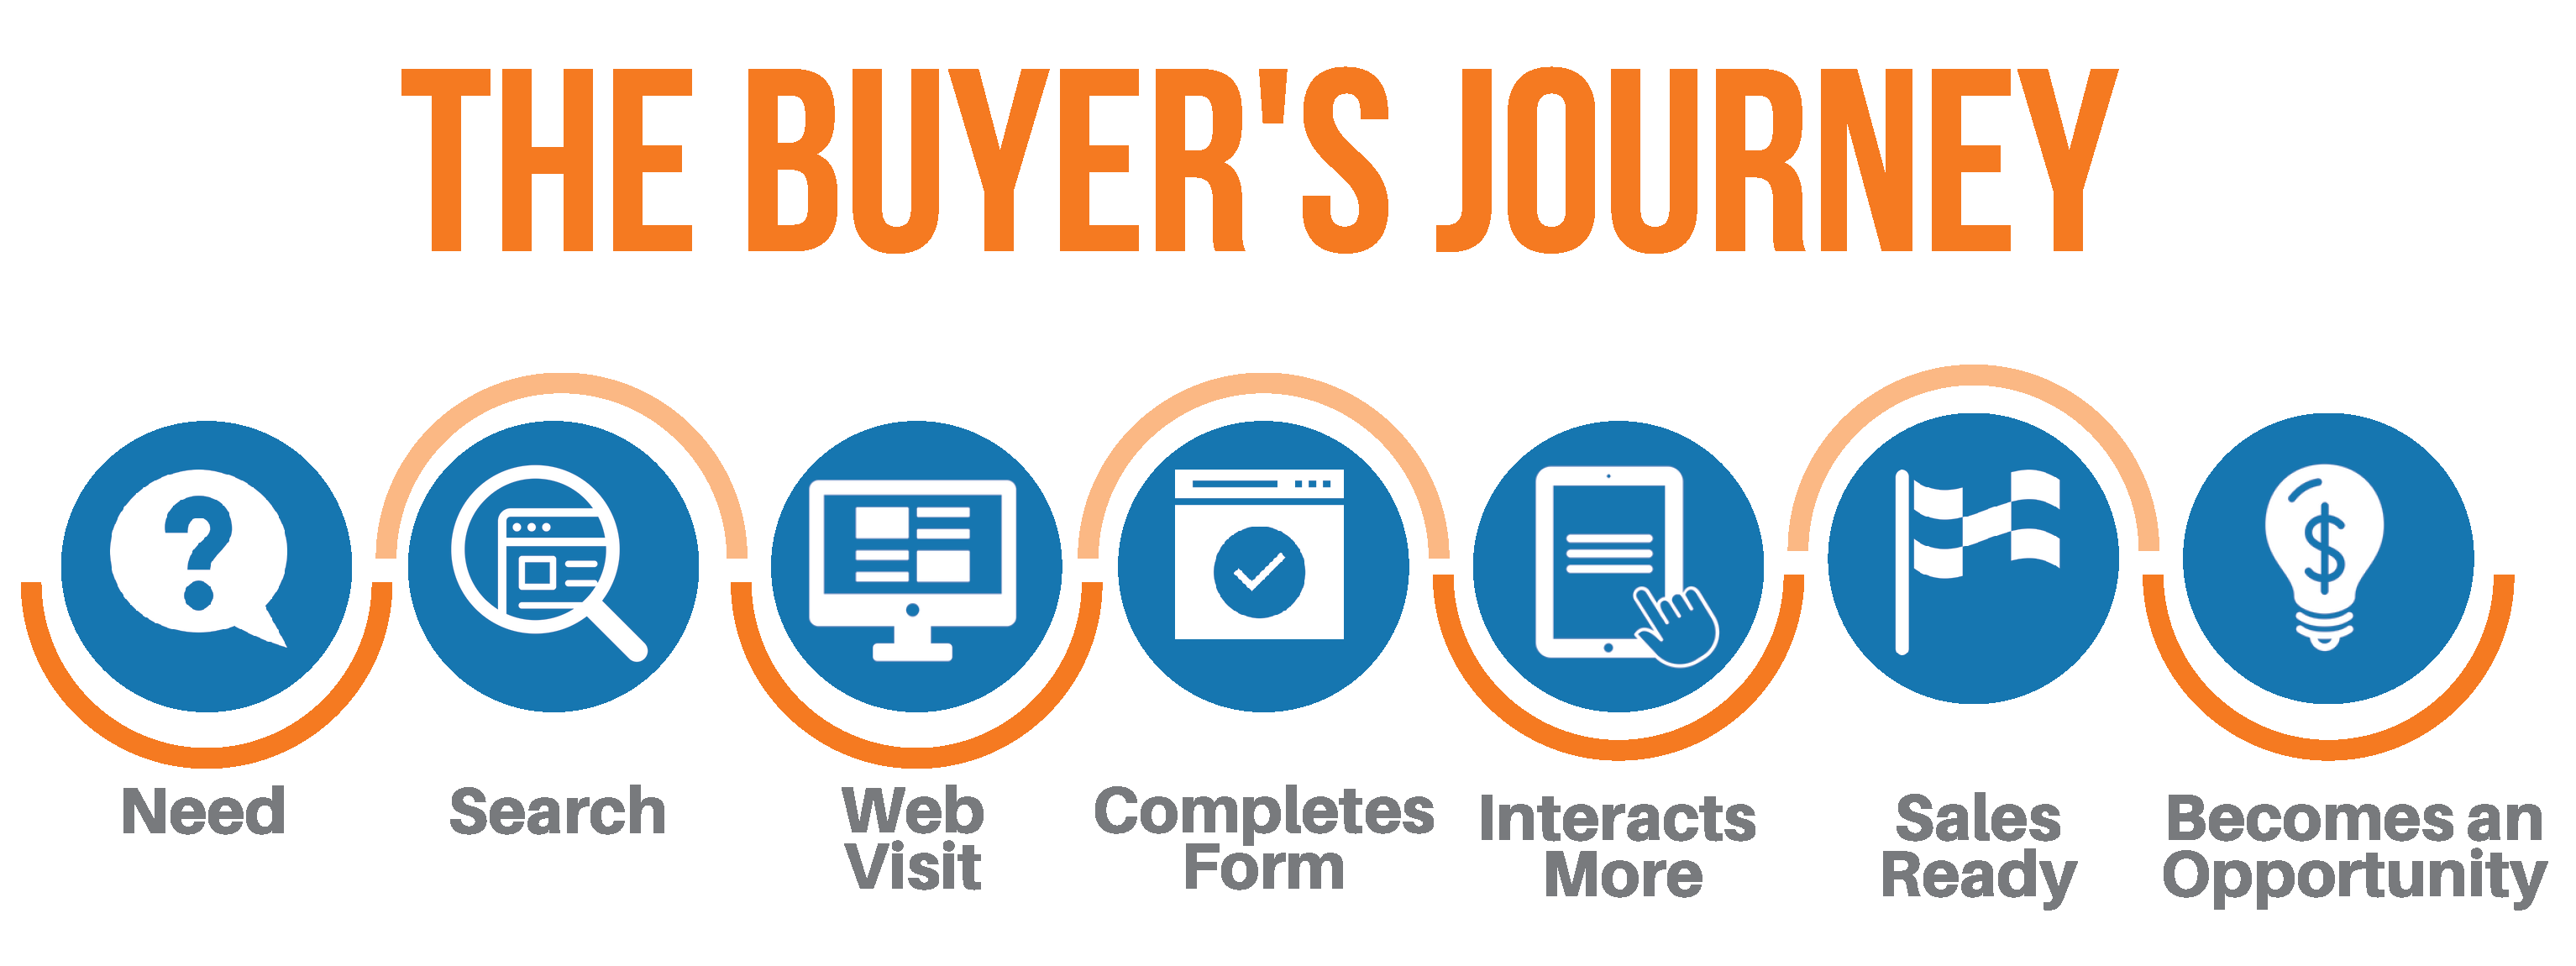 The Buyer's Journey-584168-edited